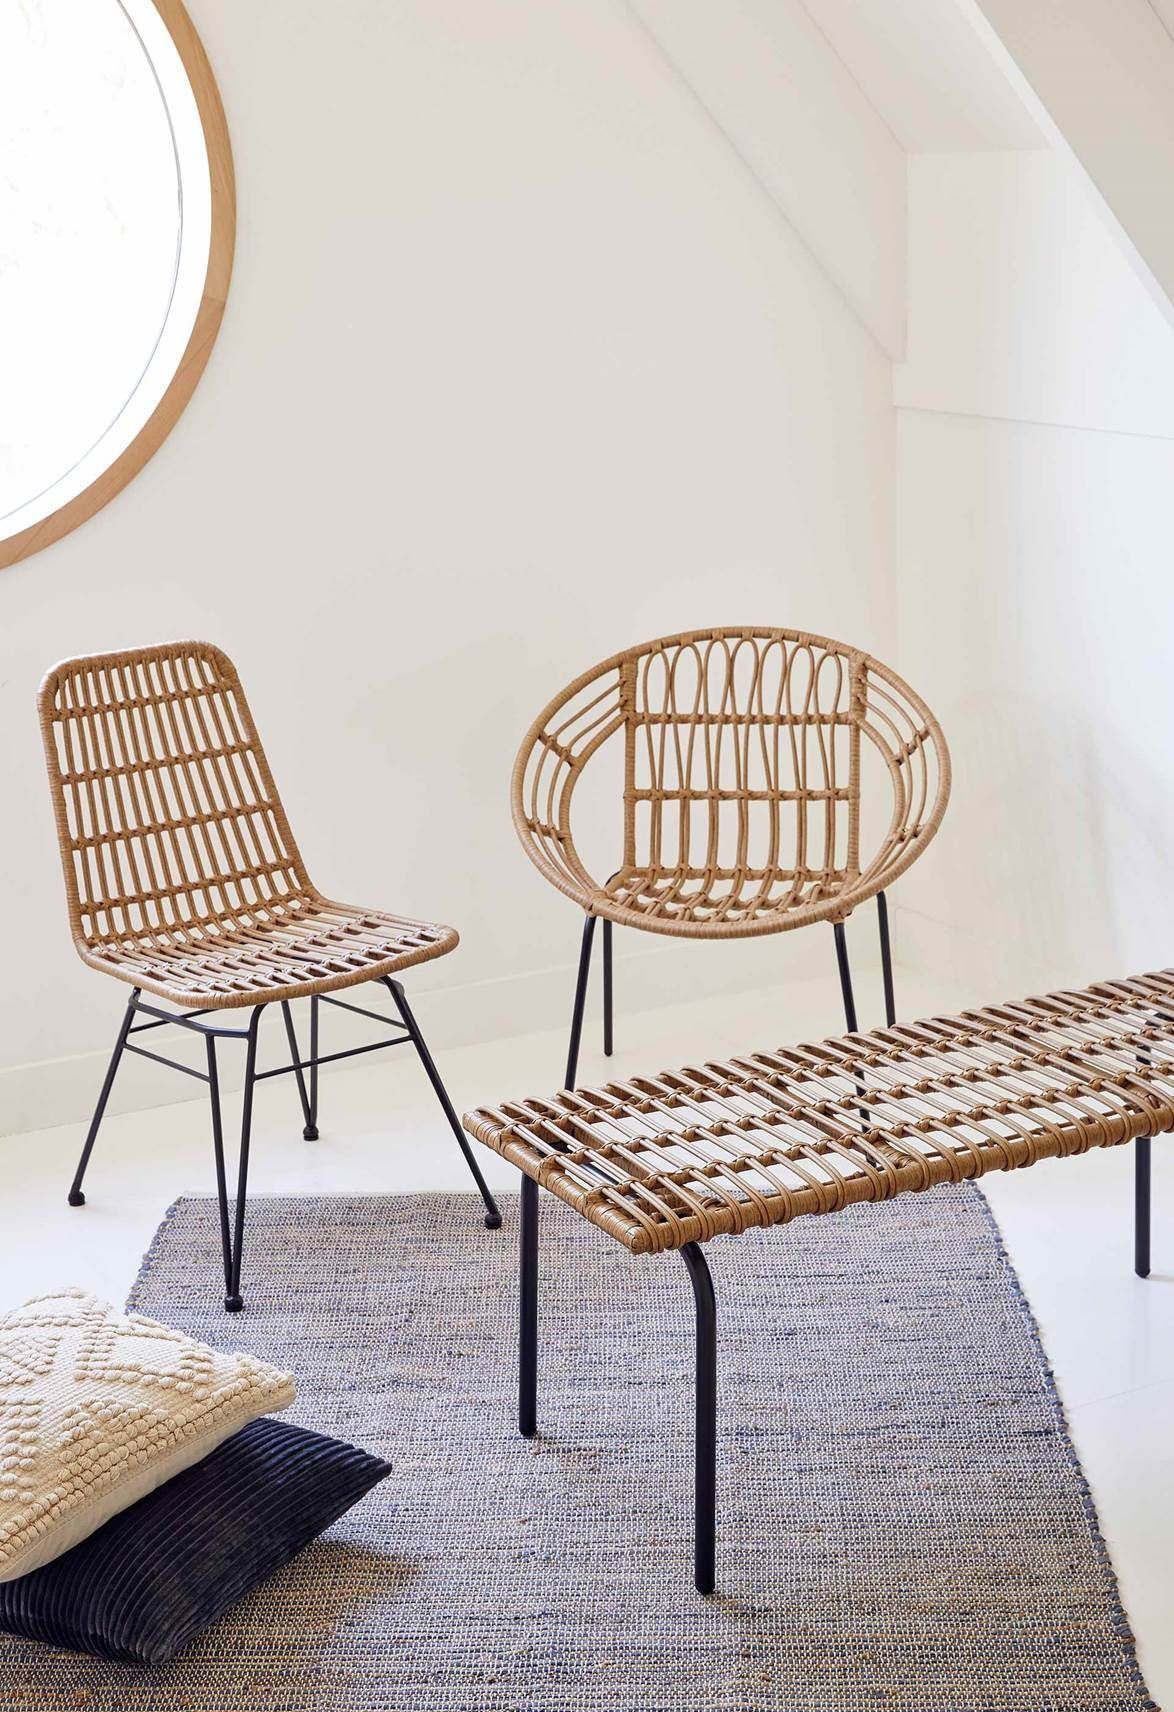 Woven Dining Chair 79 Willa Woven Chair 49 Woven Bench 79 Target Austra Woven Dining Chai Rattan Dining Chairs Dining Chairs Woven Dining Chairs